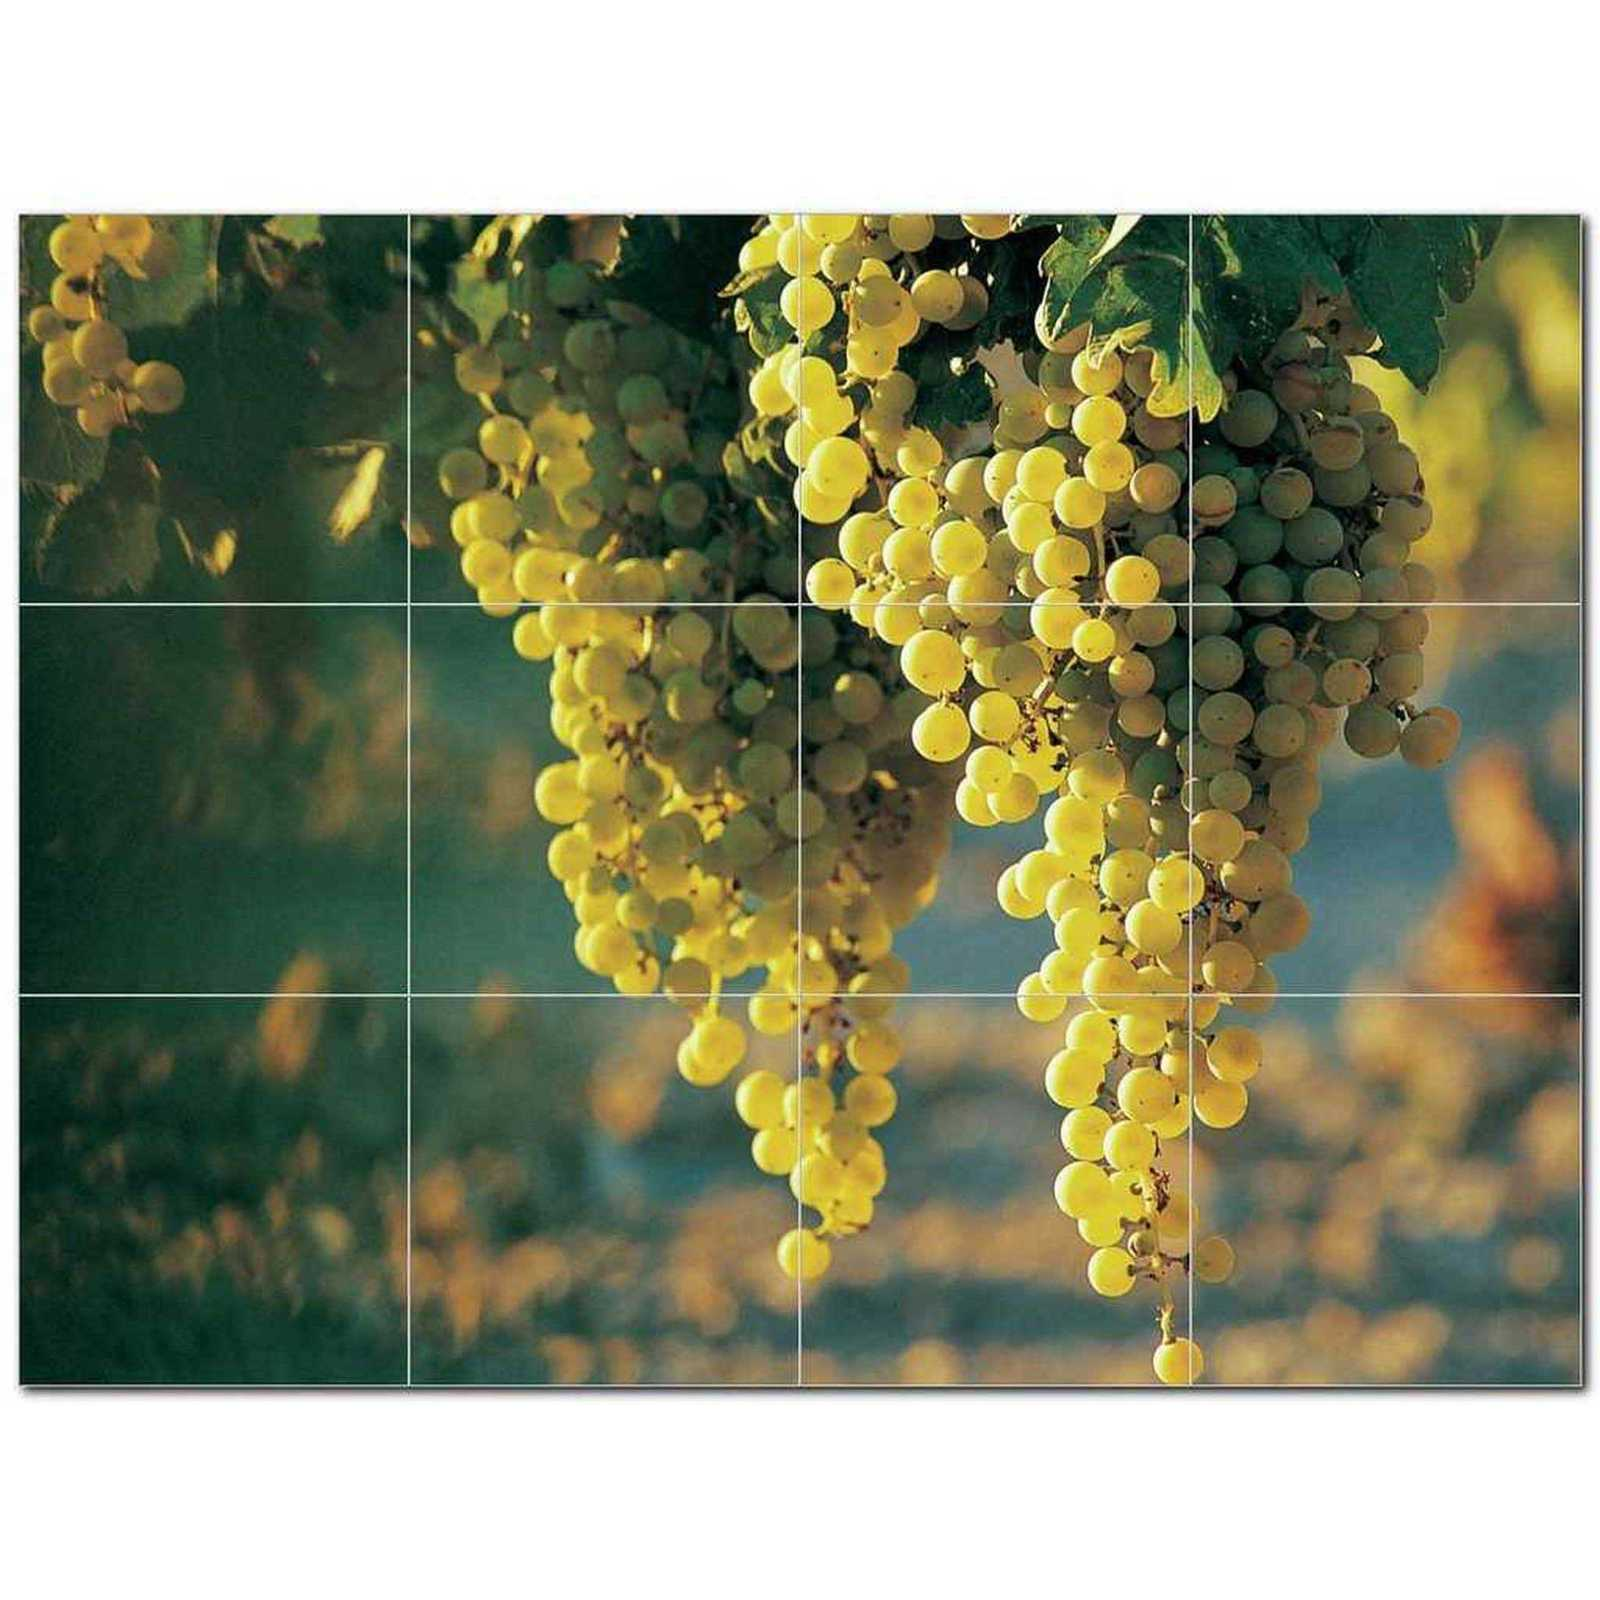 Primary image for Wine Grapes Ceramic Tile Mural Kitchen Backsplash Bathroom Shower BAZ406368